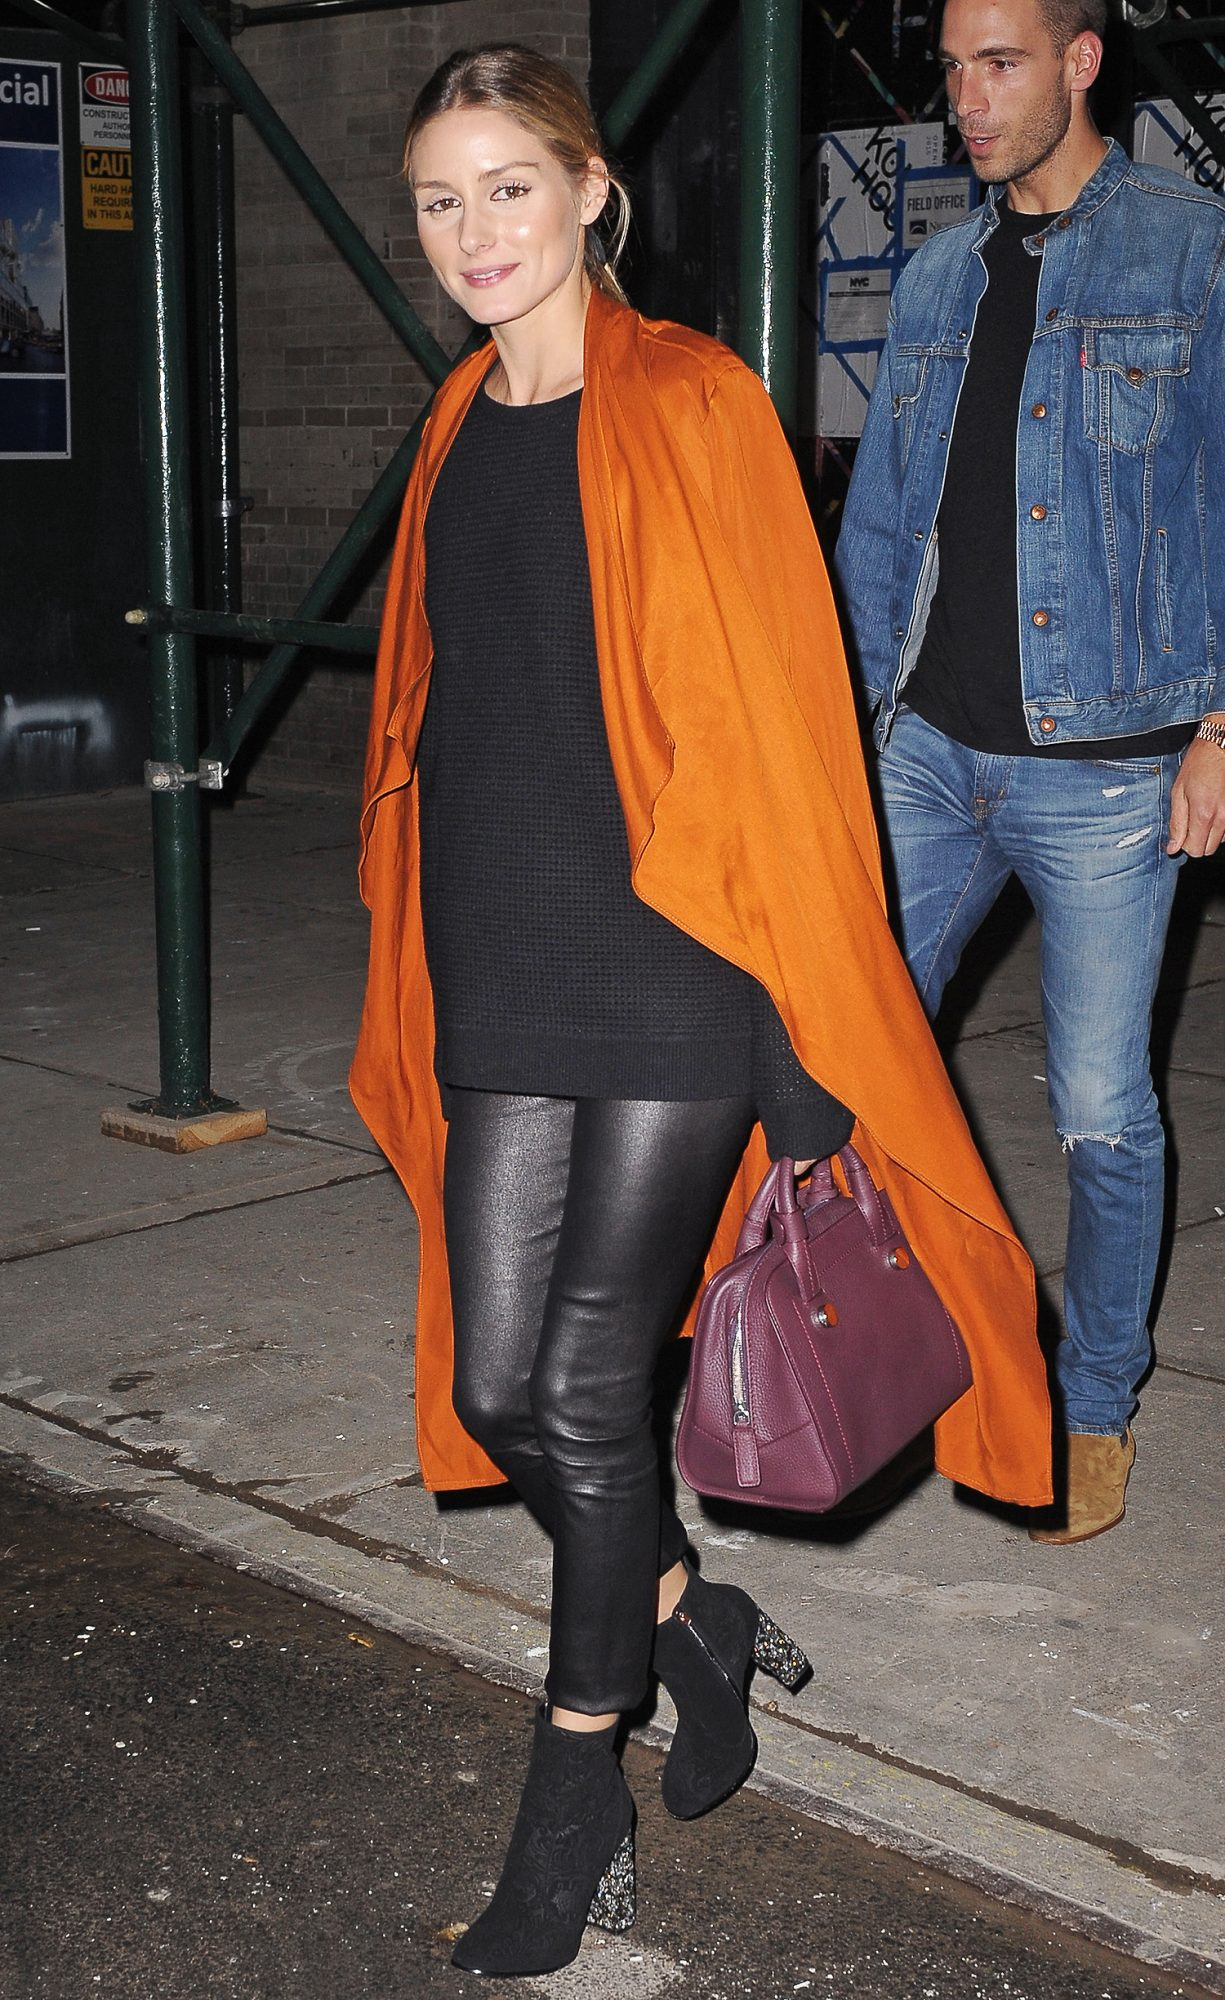 Olivia Palermo At Kola House Restaurant in NYC